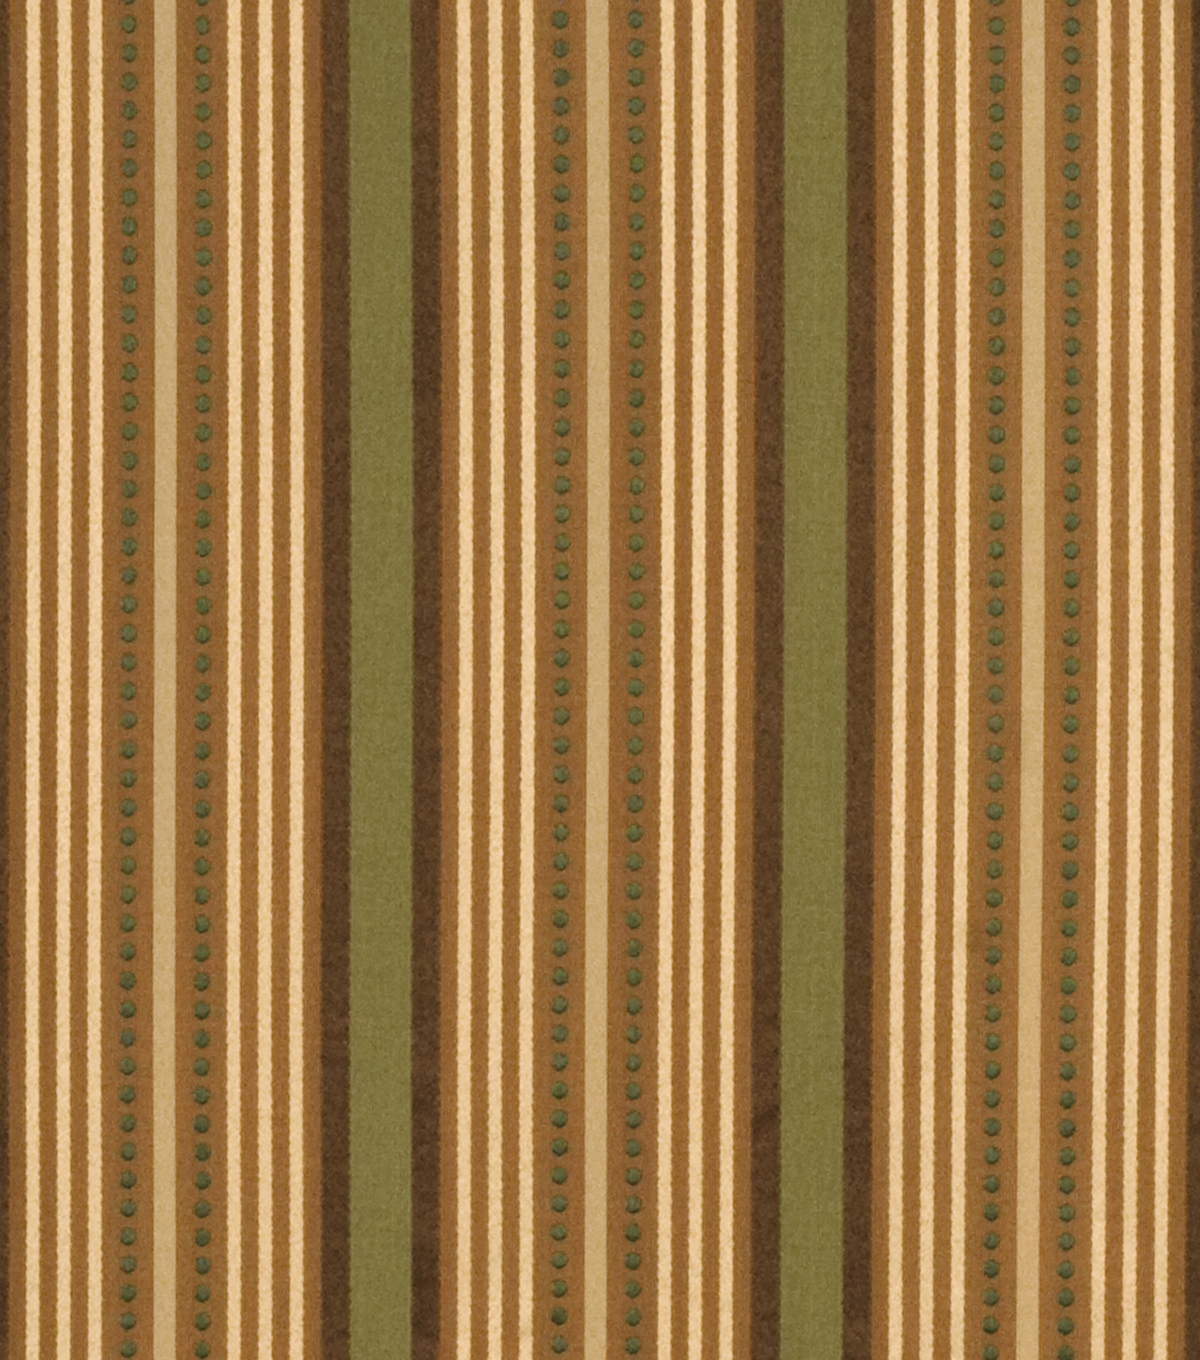 Home Decor 8\u0022x8\u0022 Fabric Swatch-Jaclyn Smith Pryce-Pottery